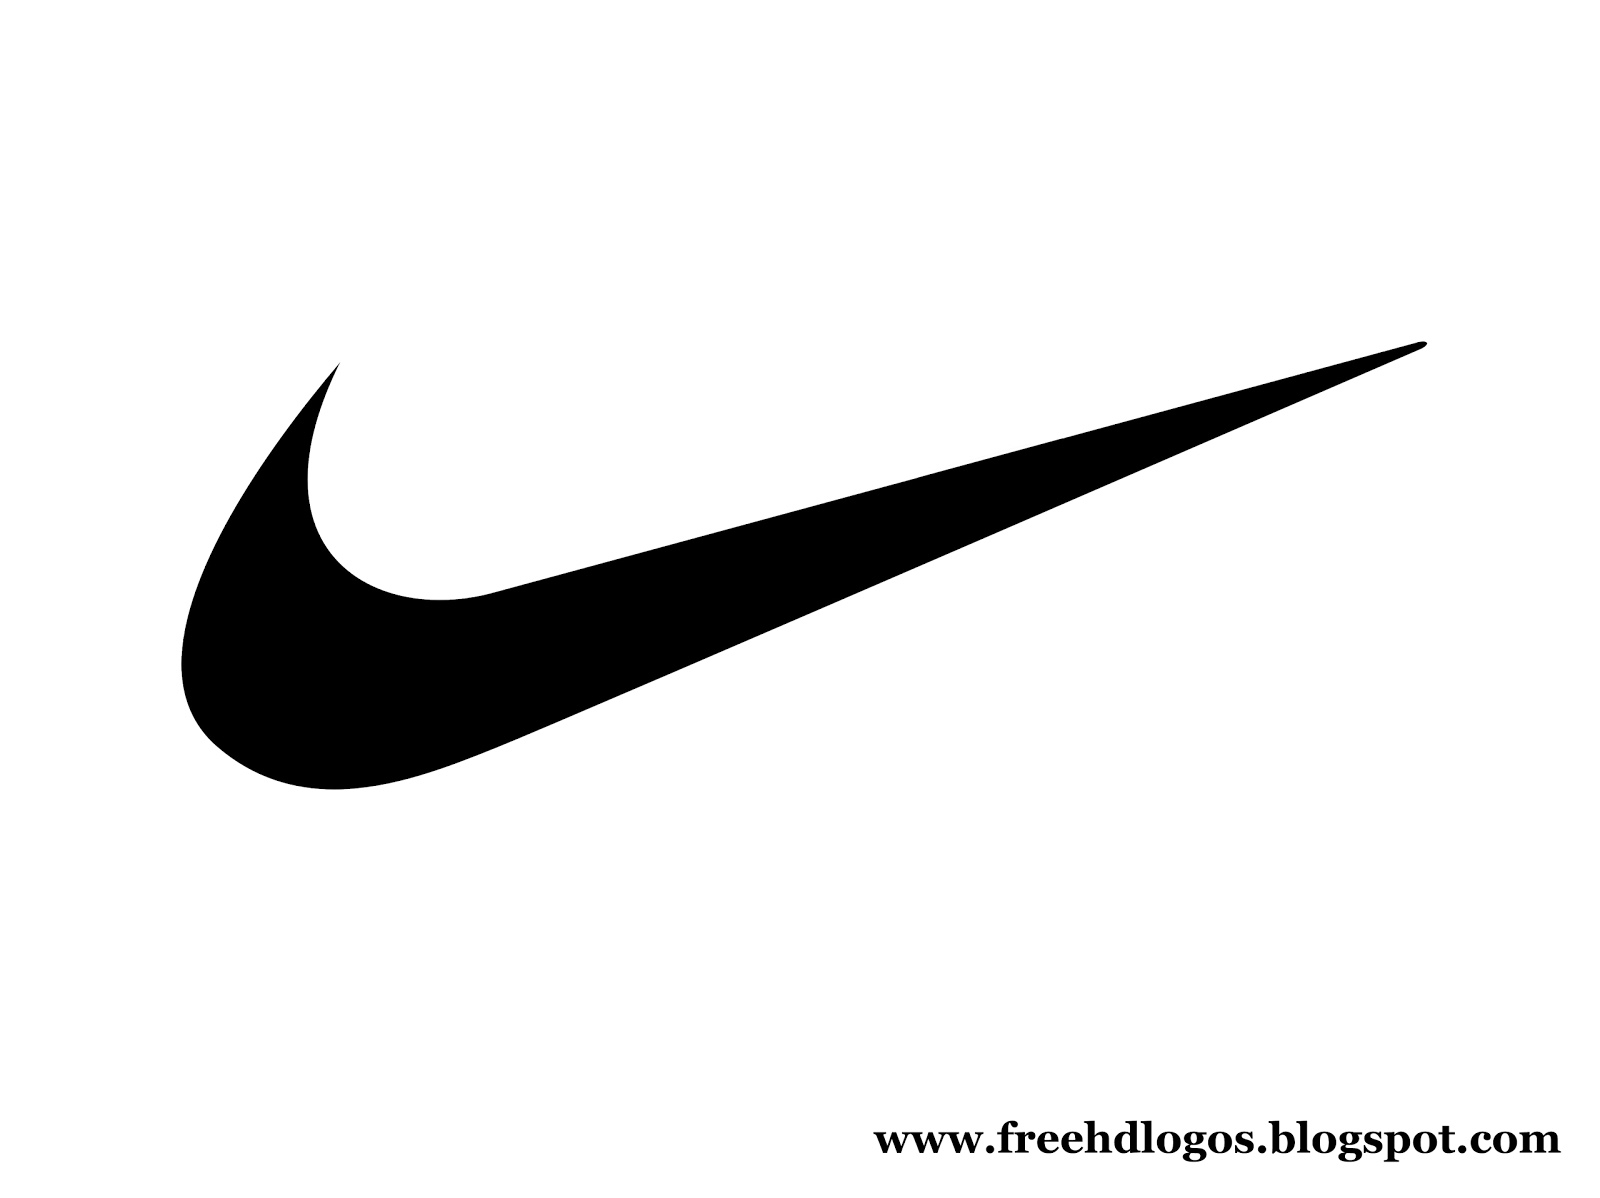 Free hd logos and images nike logos hd large size for Nike swoosh template